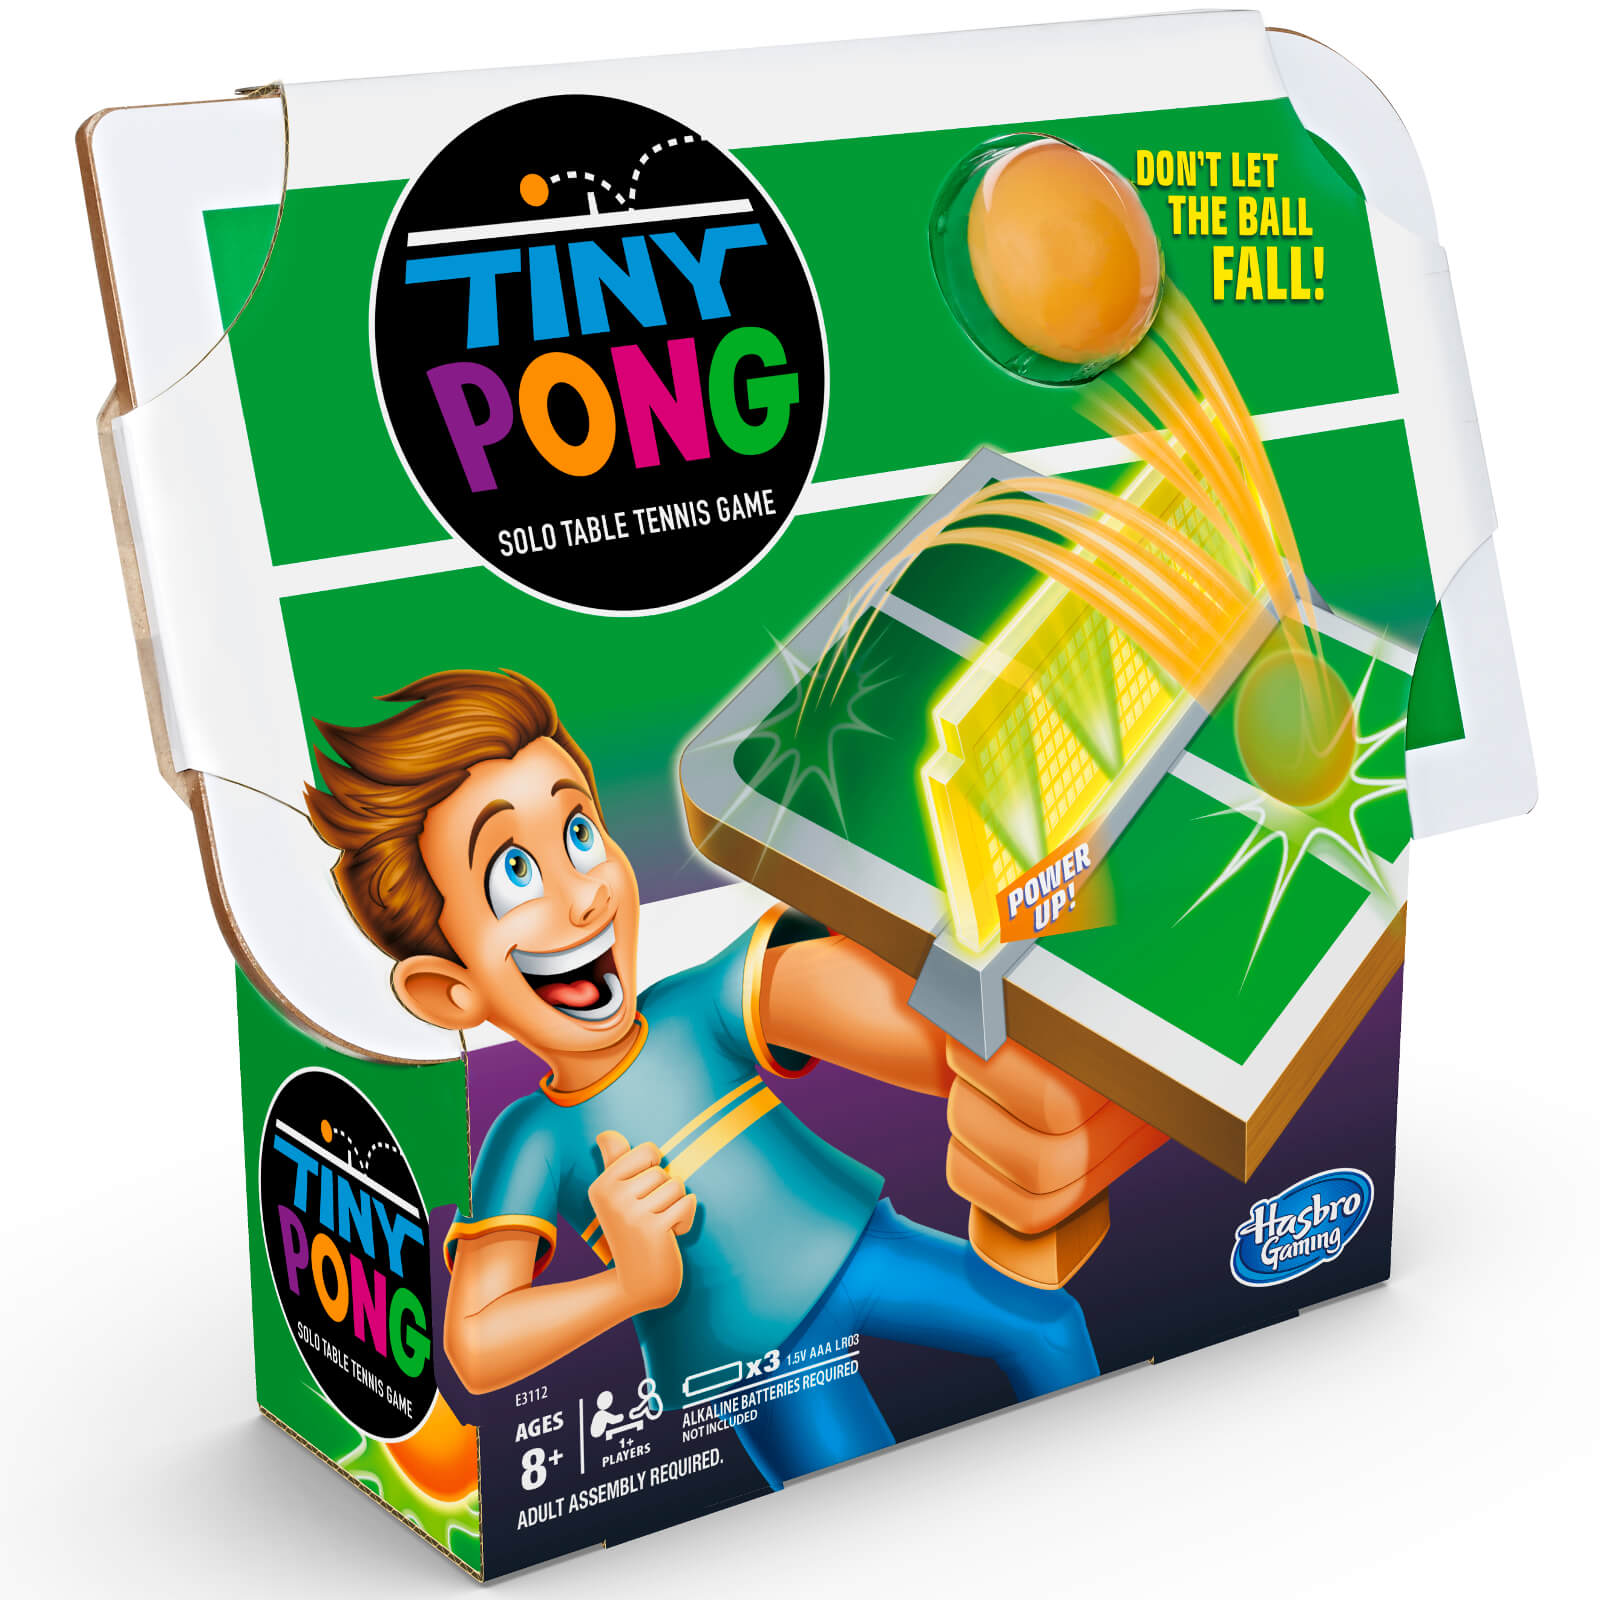 Image of Hasbro Tiny Pong Solo Table Tennis Handheld Game